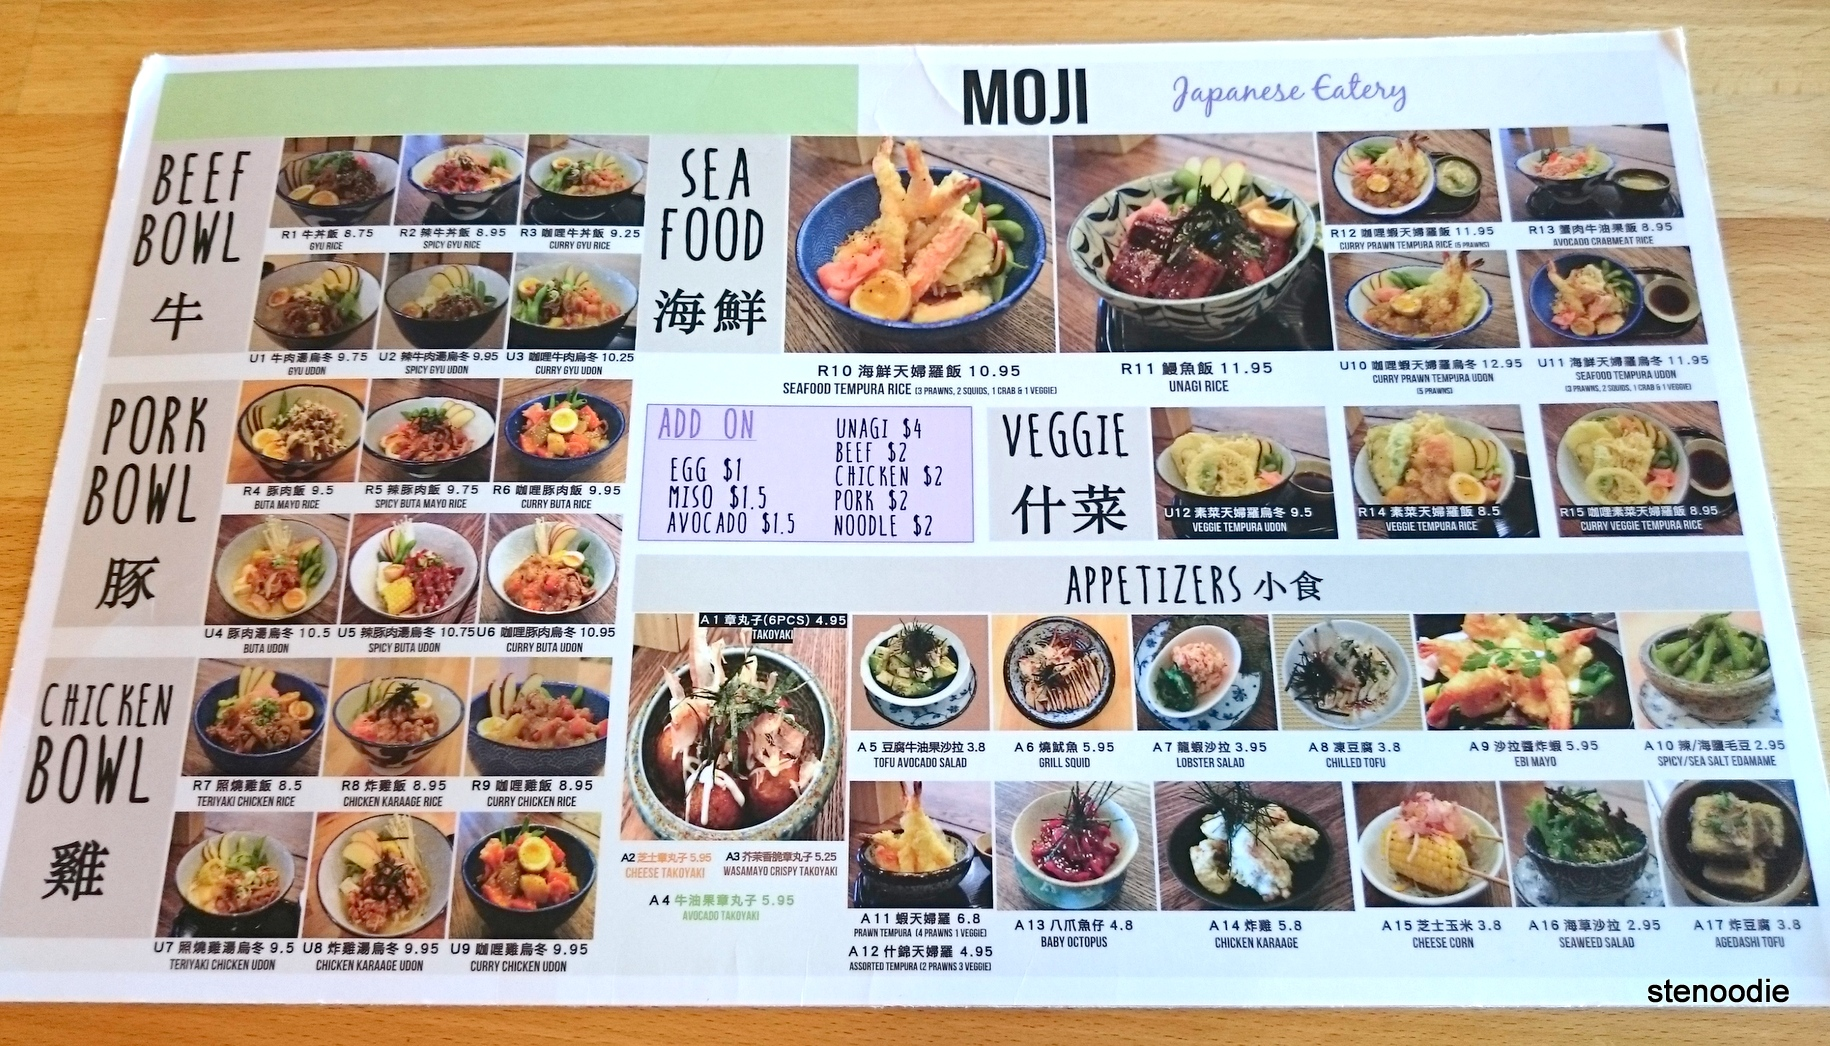 Moji Japanese Eatery menu and prices